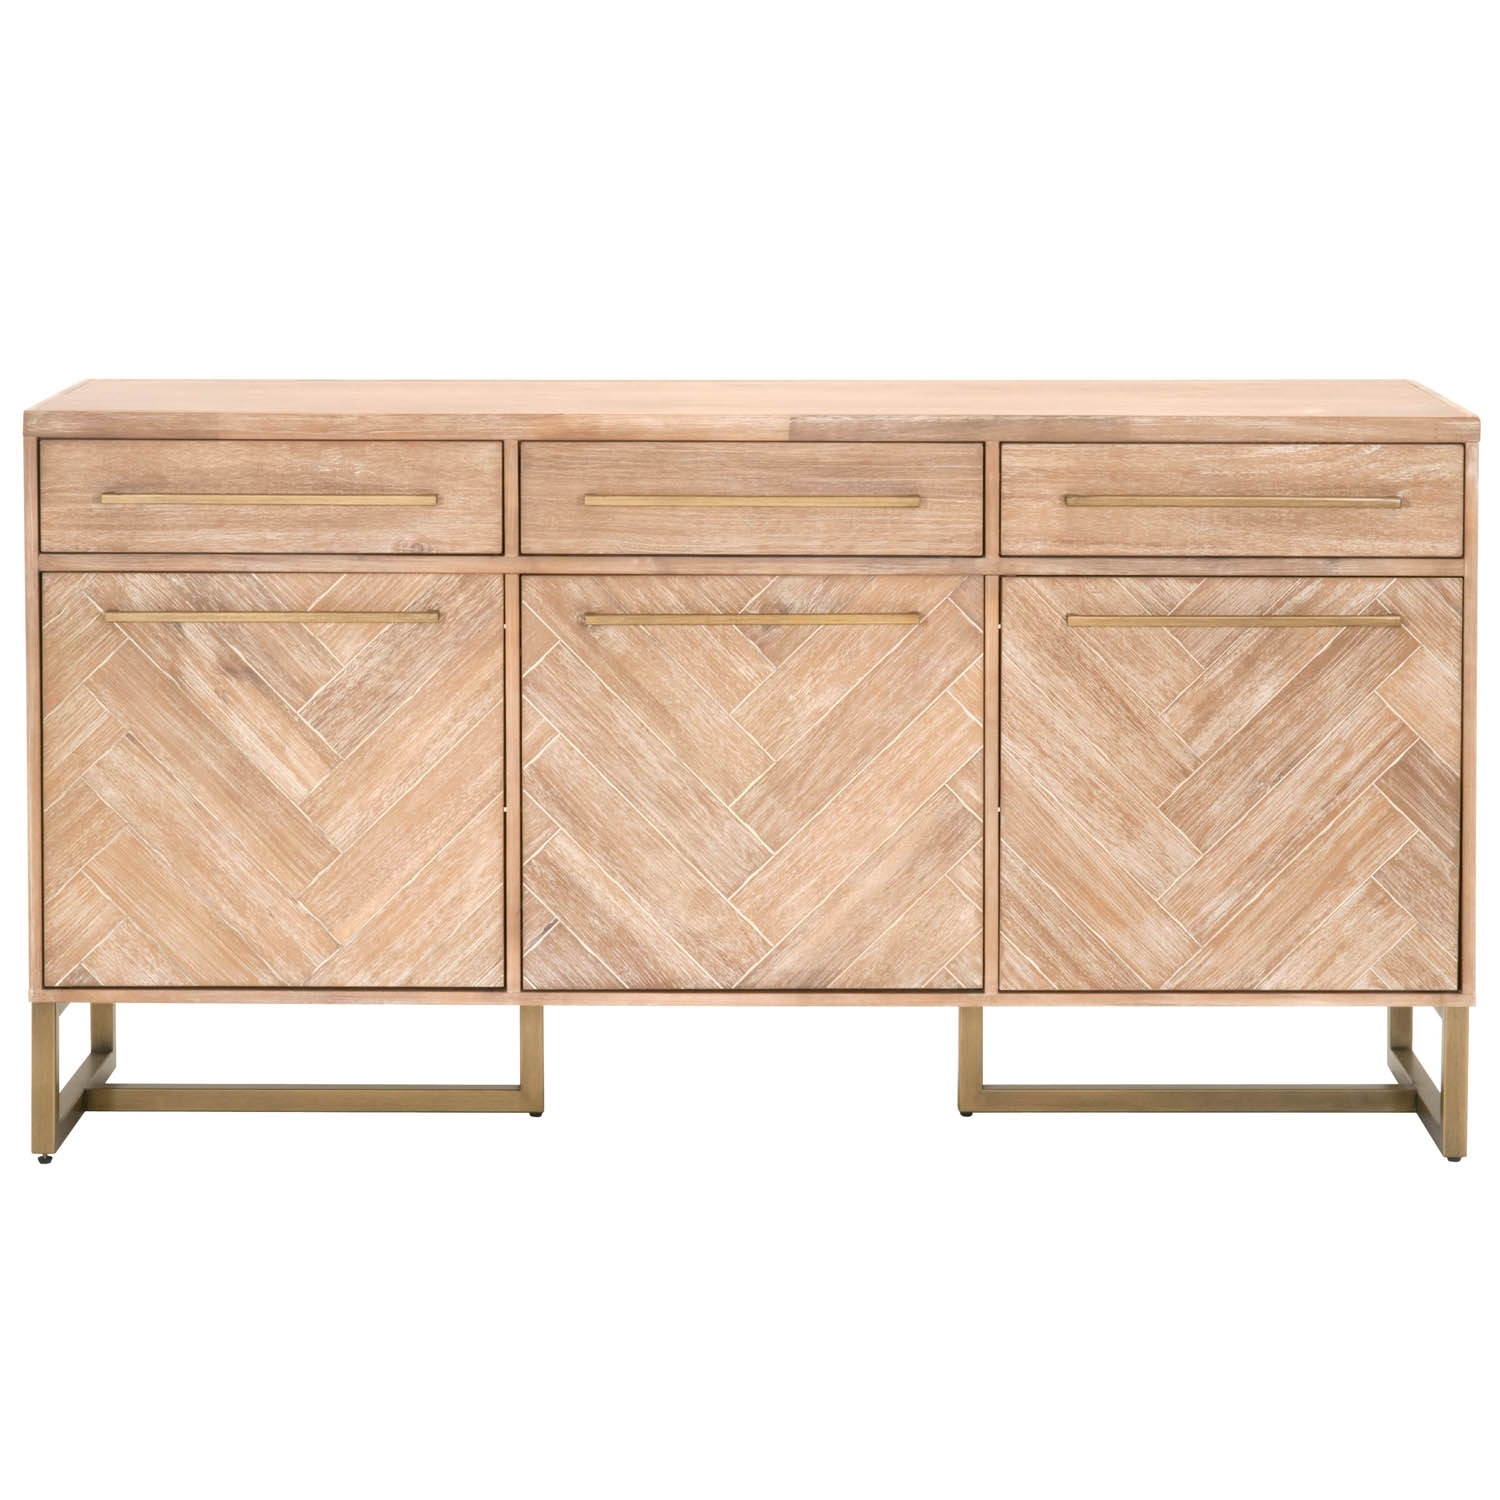 Mosaic Media Sideboard in Parquet Sideboards (Image 14 of 30)